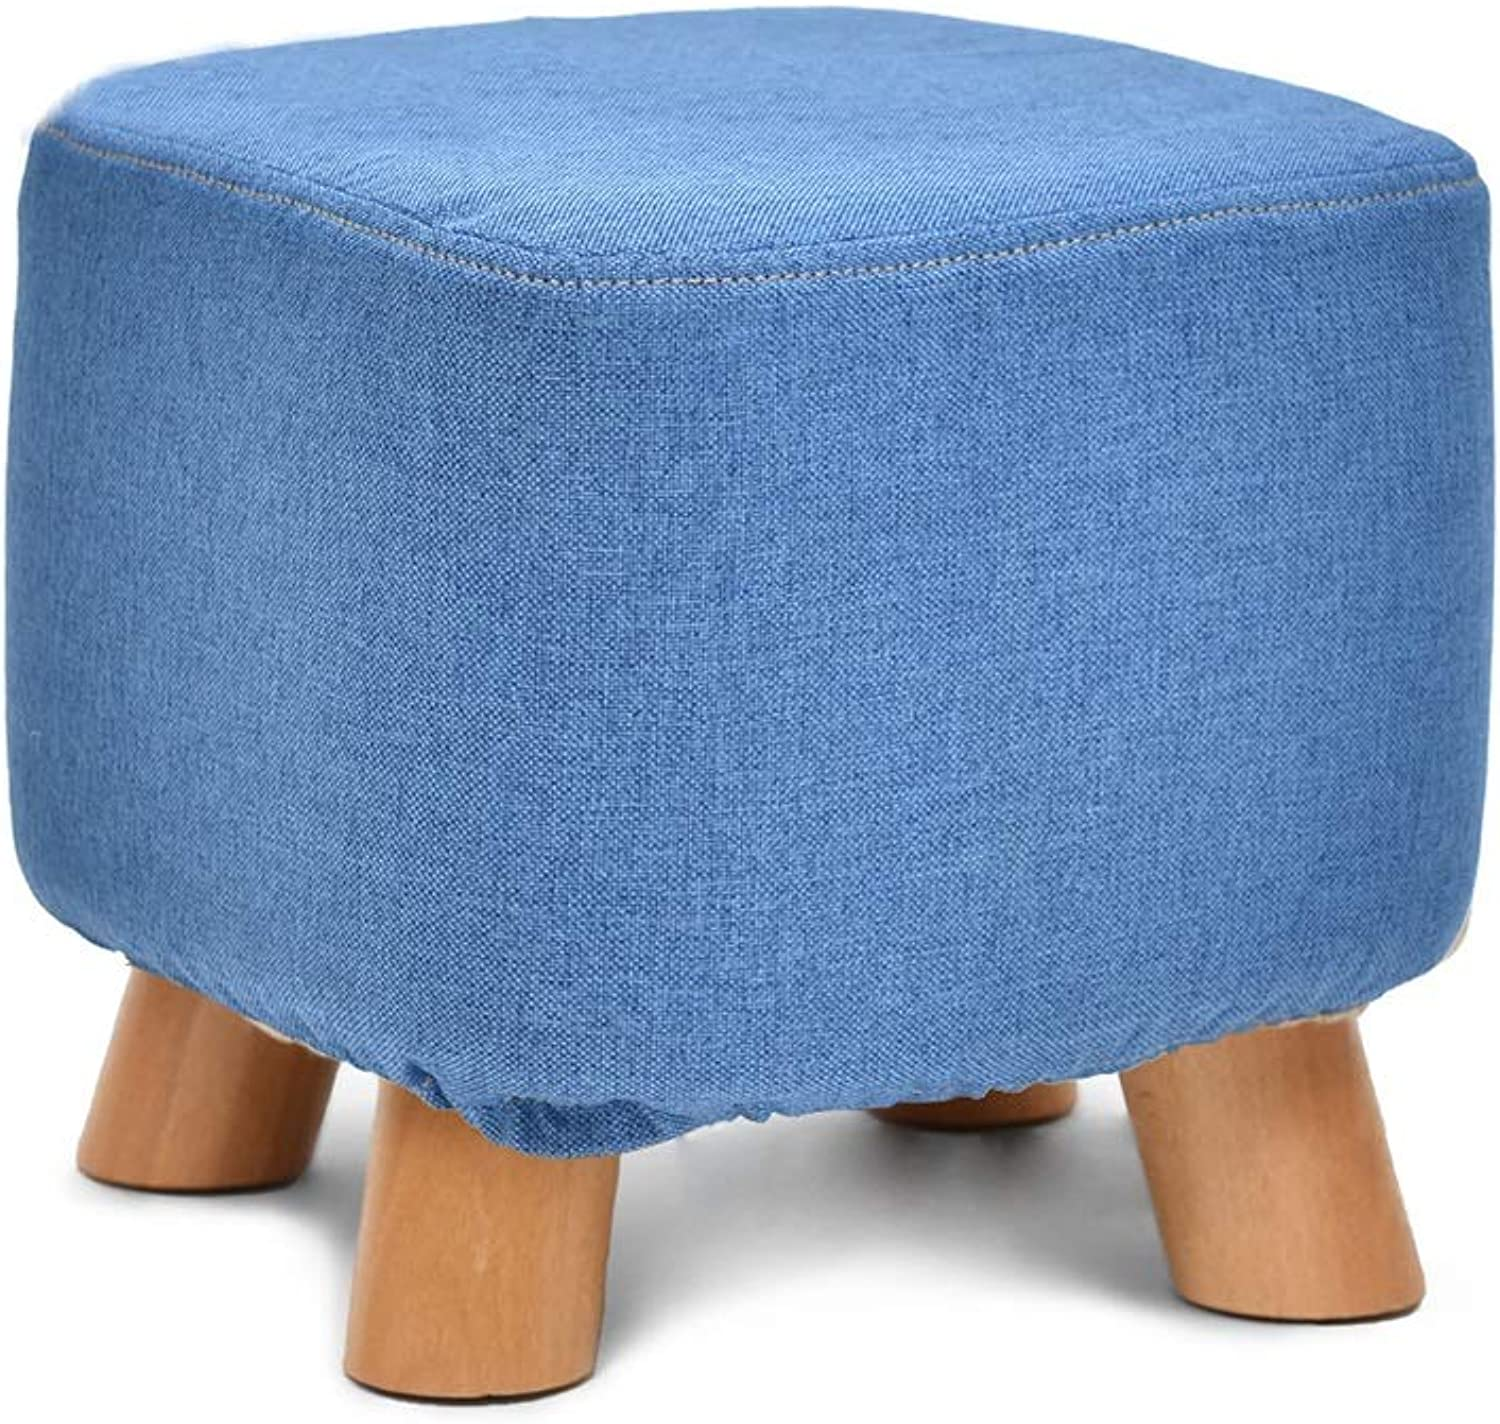 Footstool, Change shoes, Stool, Fabric, Stool, Solid Wood Stool, Sofa Stool, Removable and Washable (color   K)